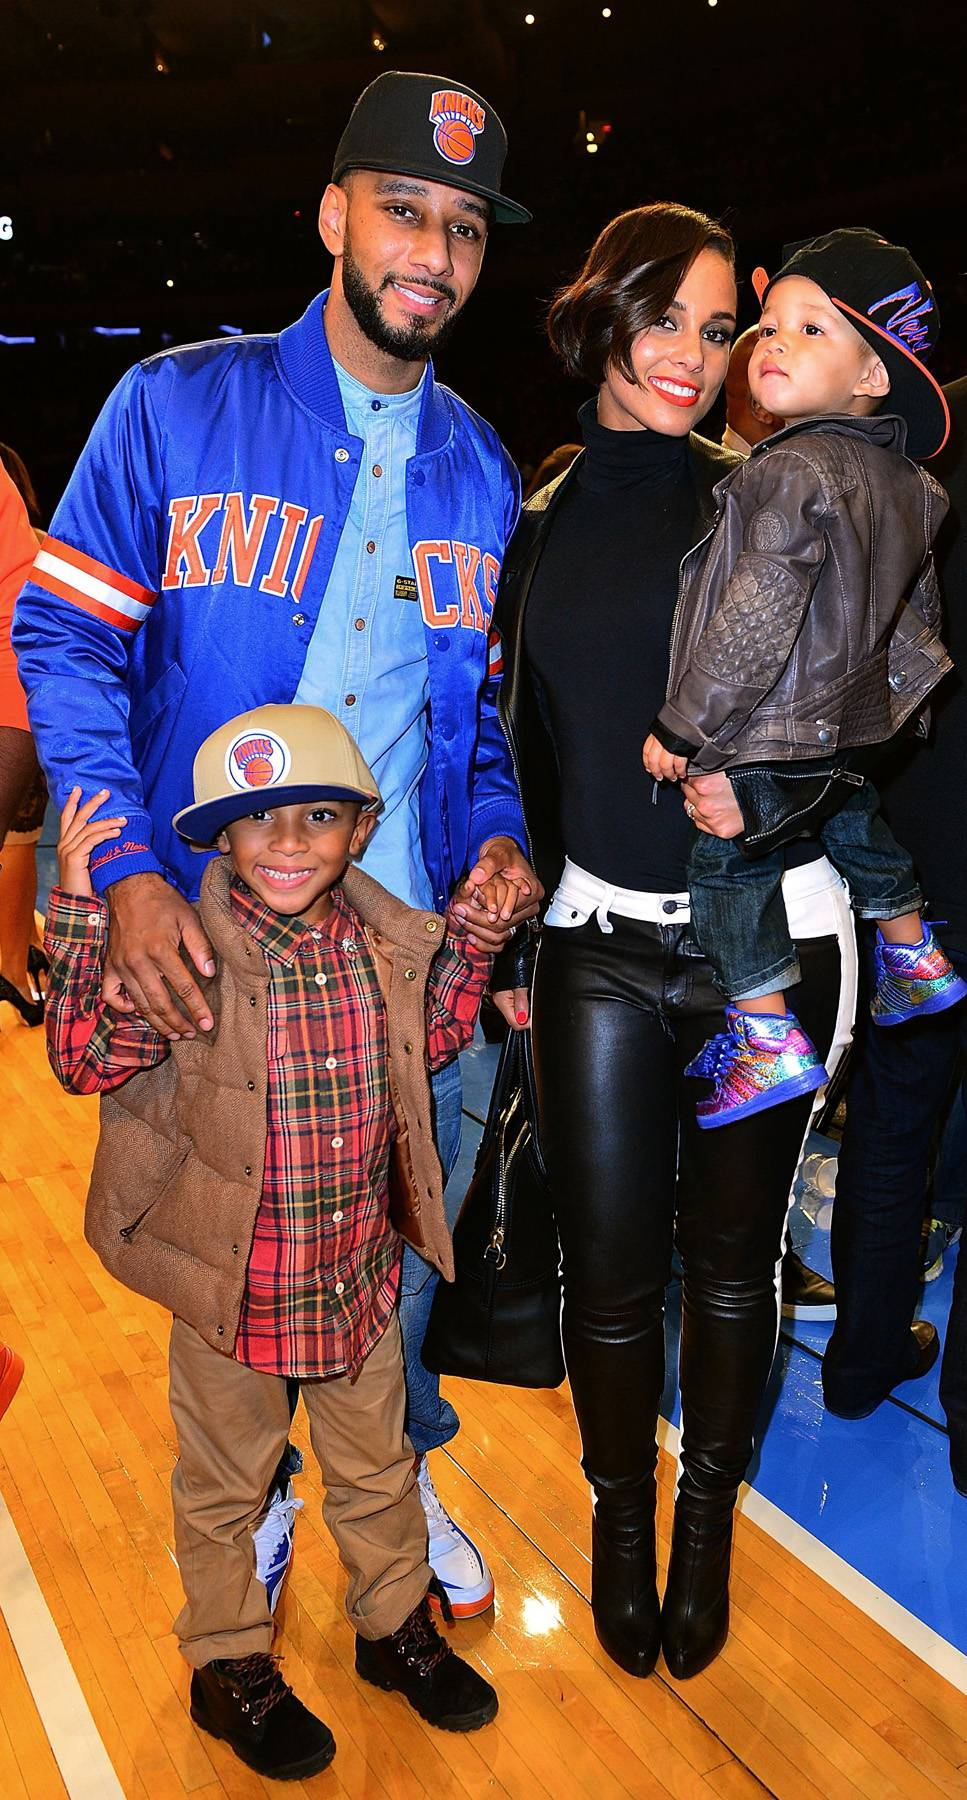 """Swizz Beatz and Alicia Keys - Swizz Beatz and his wife Alicia Keys often go to Knicks games for some good old fashion family time, perhaps complete with a sing-a-long when Mommy's song, """"Emprire State of Mind,"""" comes blaring through the speakers.(Photo: James Devaney/FilmMagic)"""